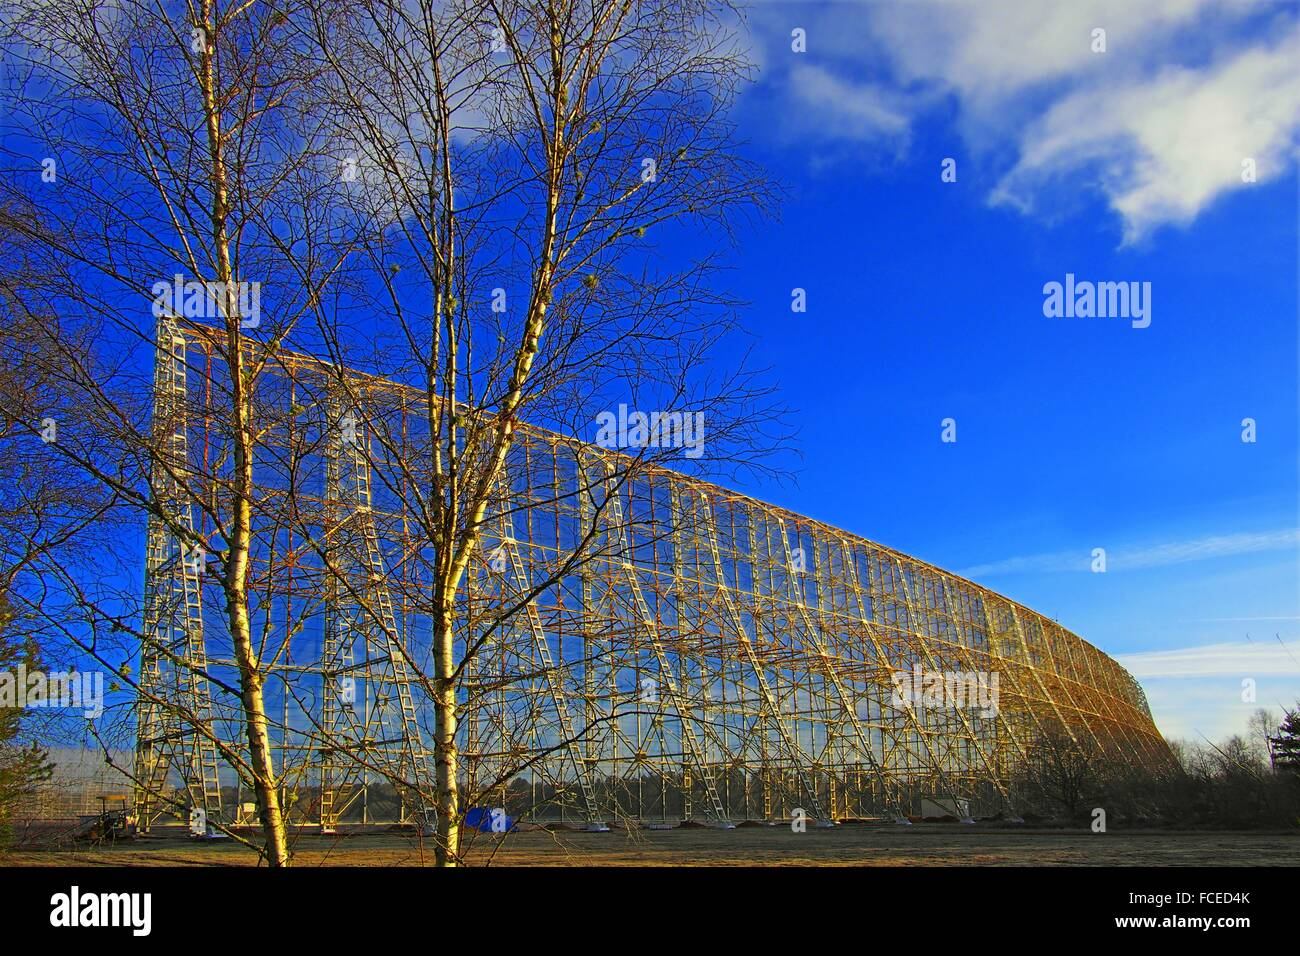 Radio Astronomic Station in the Sologne forest, Nancay, Cher, Centre-Val de Loire, France - Stock Image